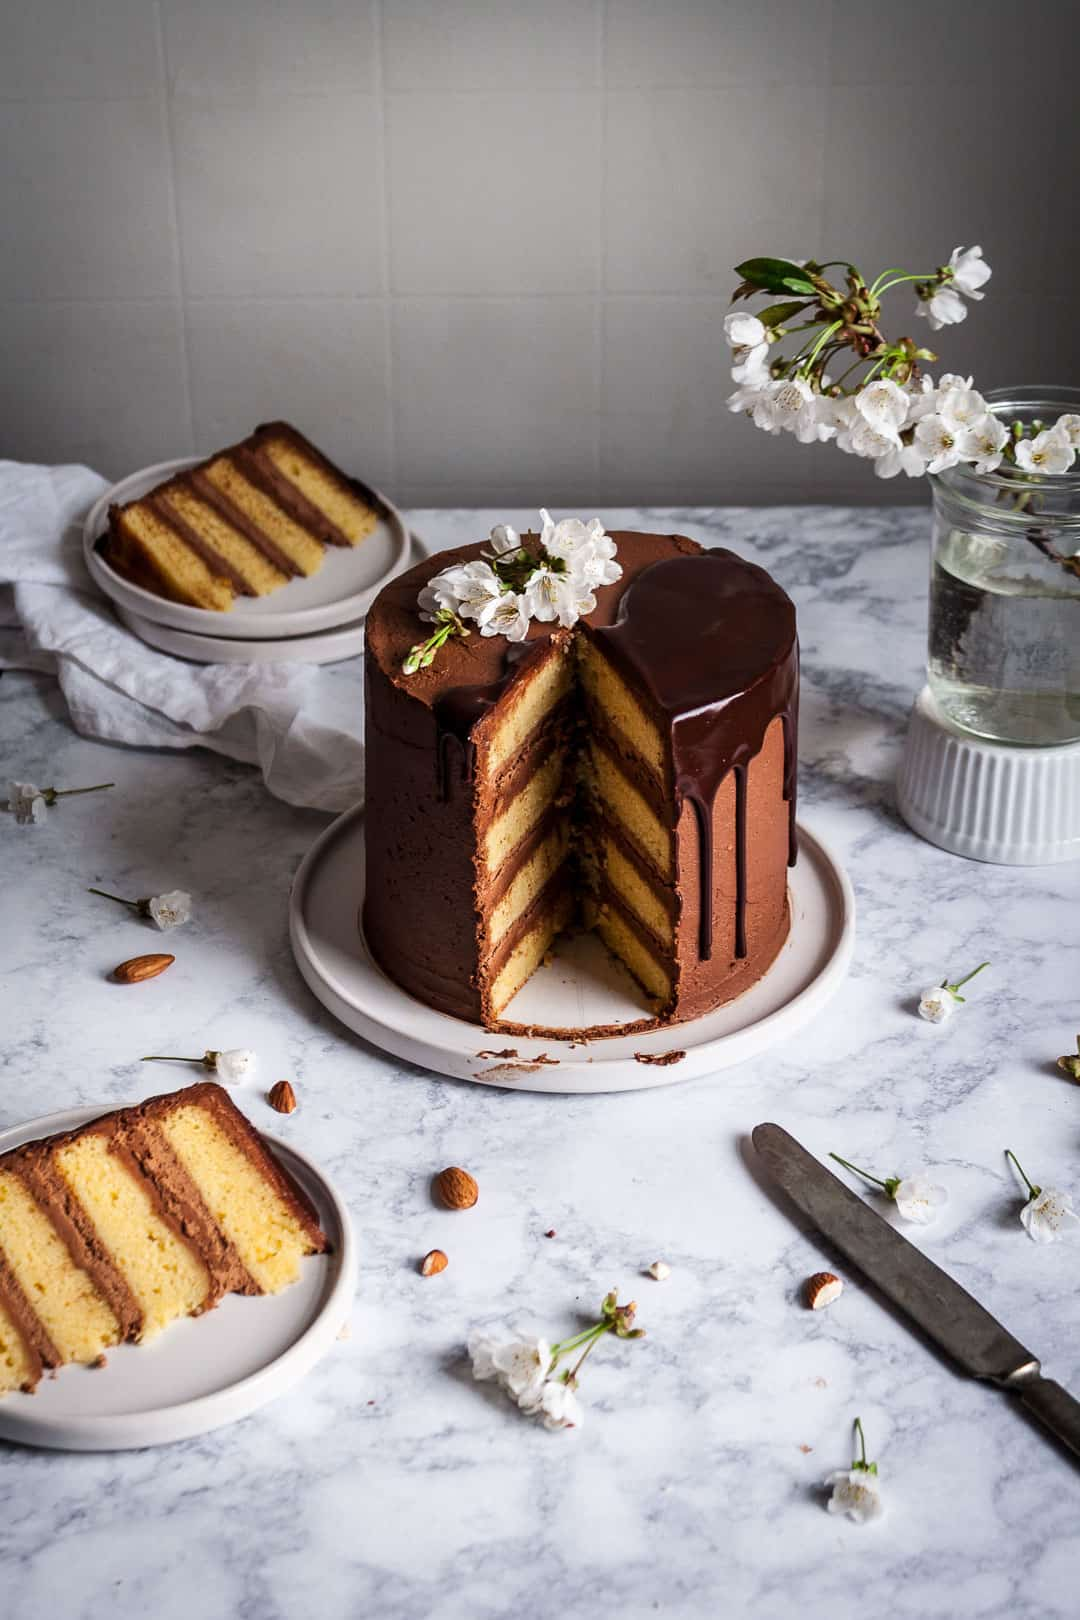 side view of marzipan cake with dark chocolate buttercream with two slices cut out and plated next to the cake on a marble surface